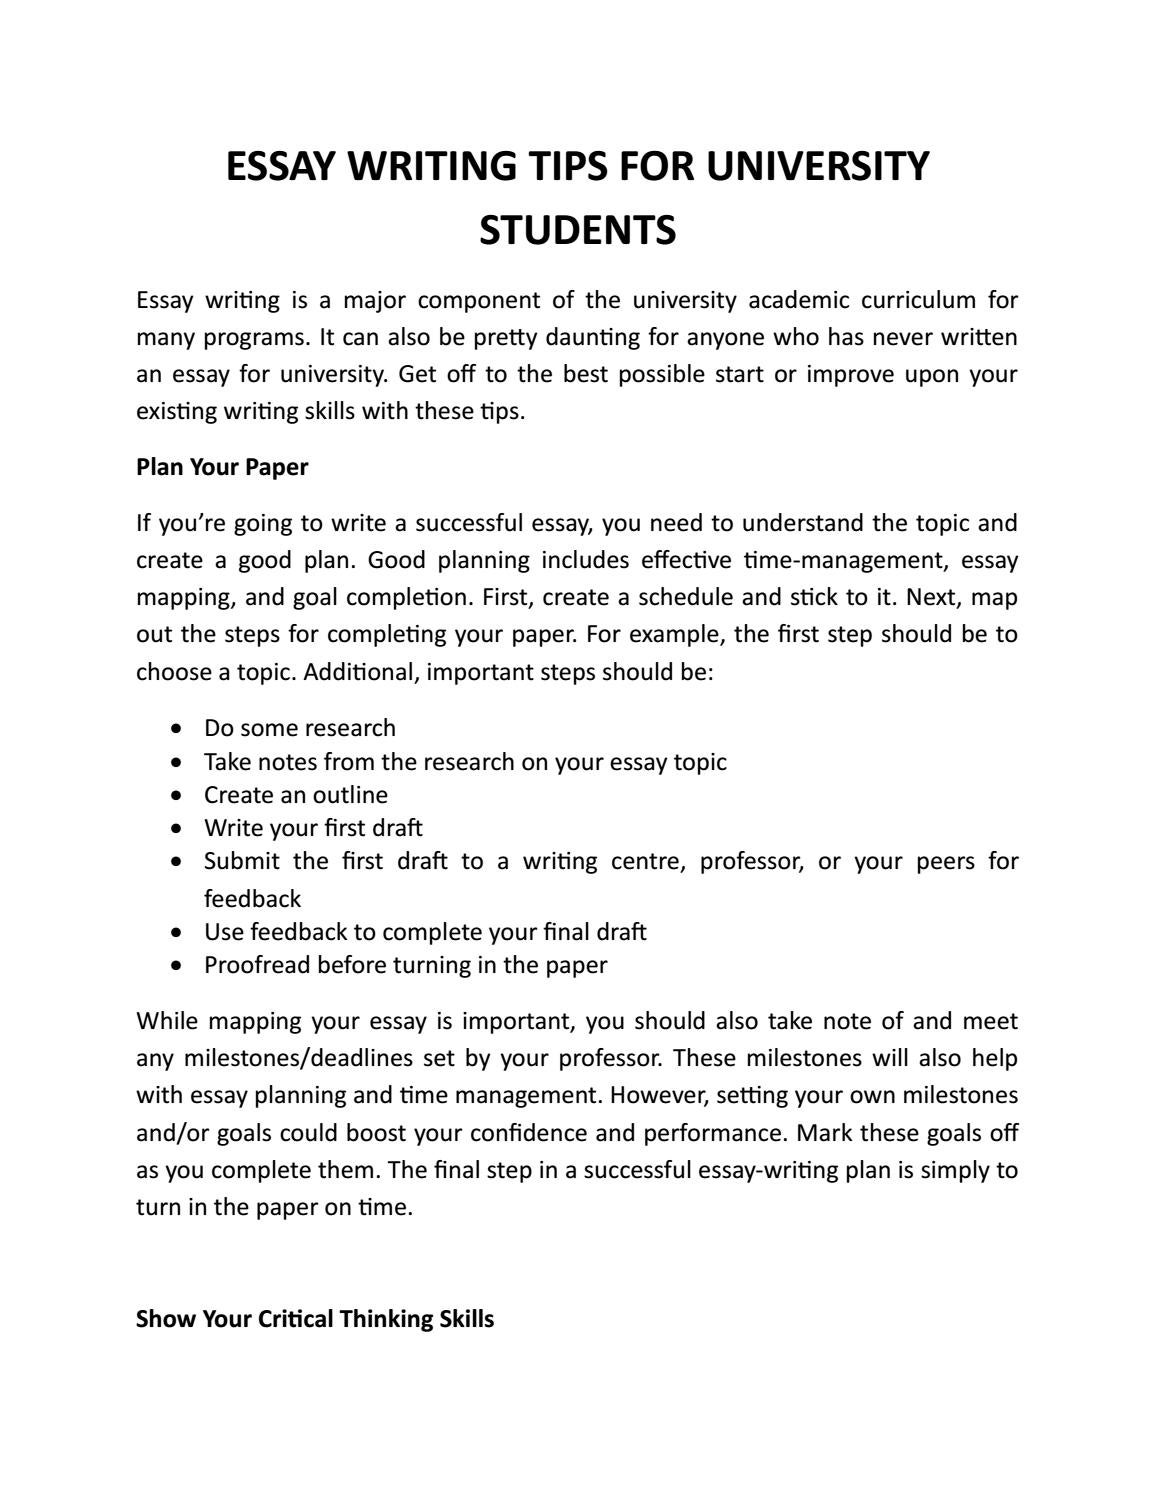 How to start creative writing essay